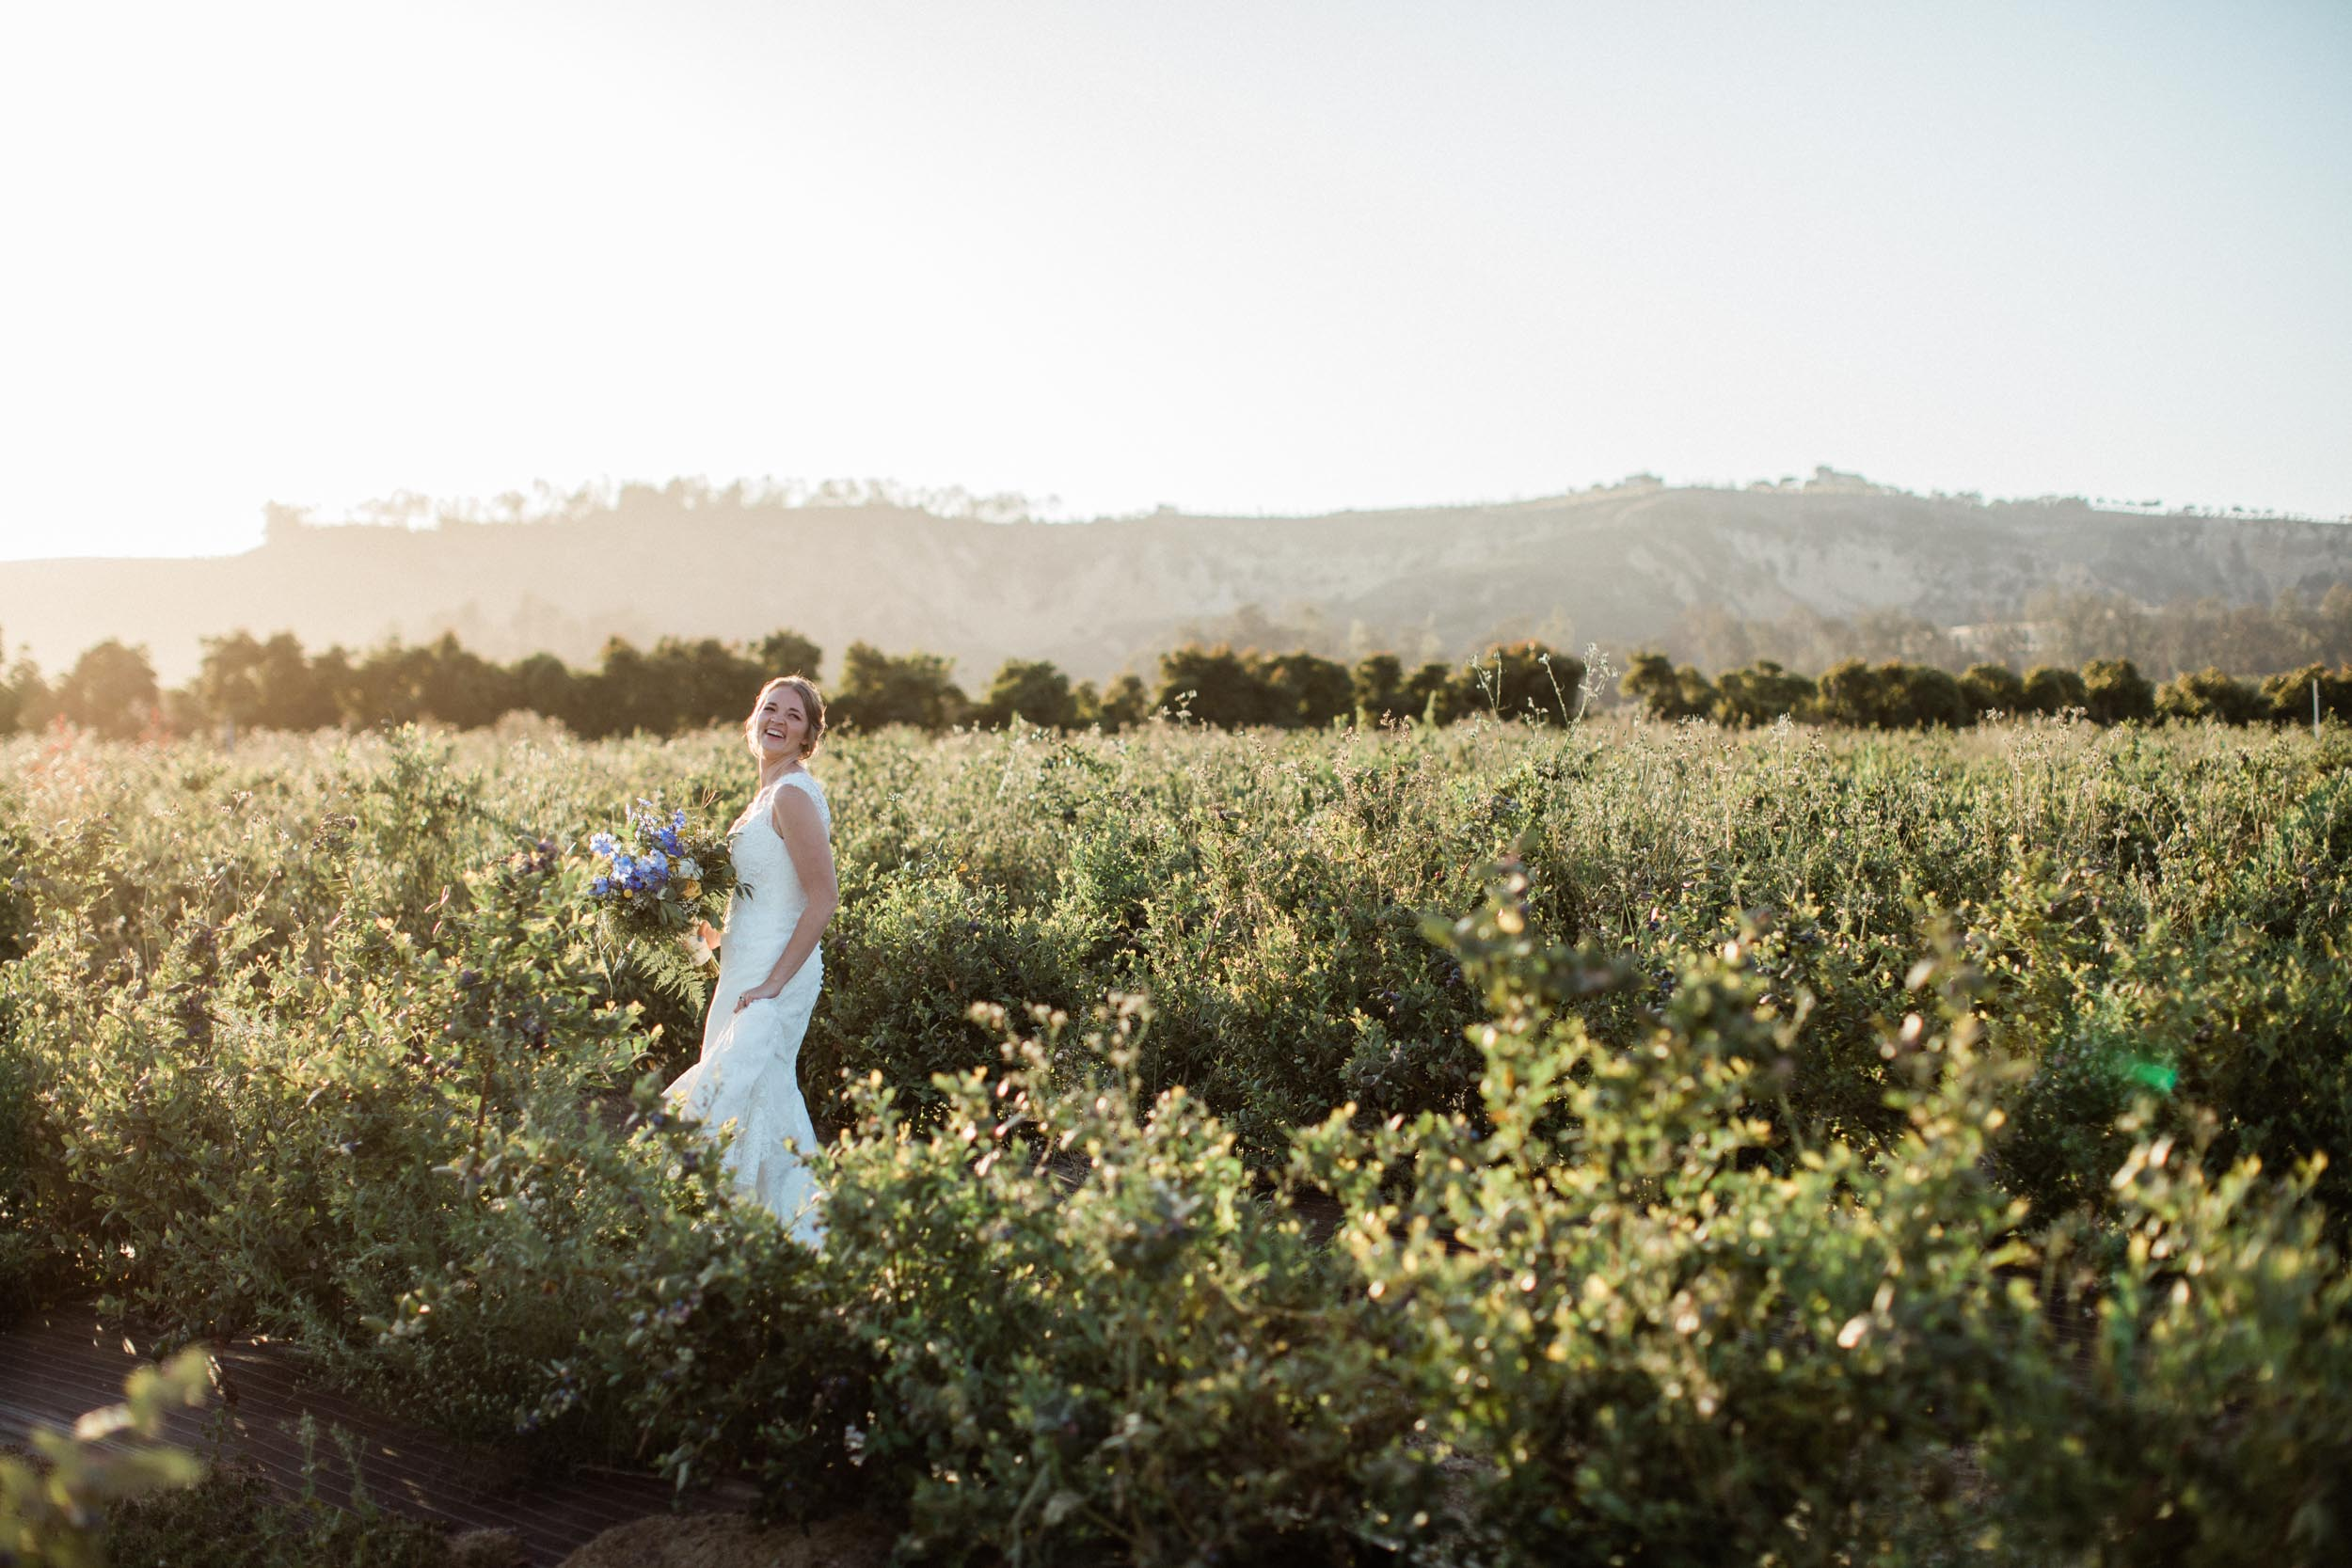 BKM-Photography-Gerry-Ranch-Southern-California-Wedding-0091.jpg